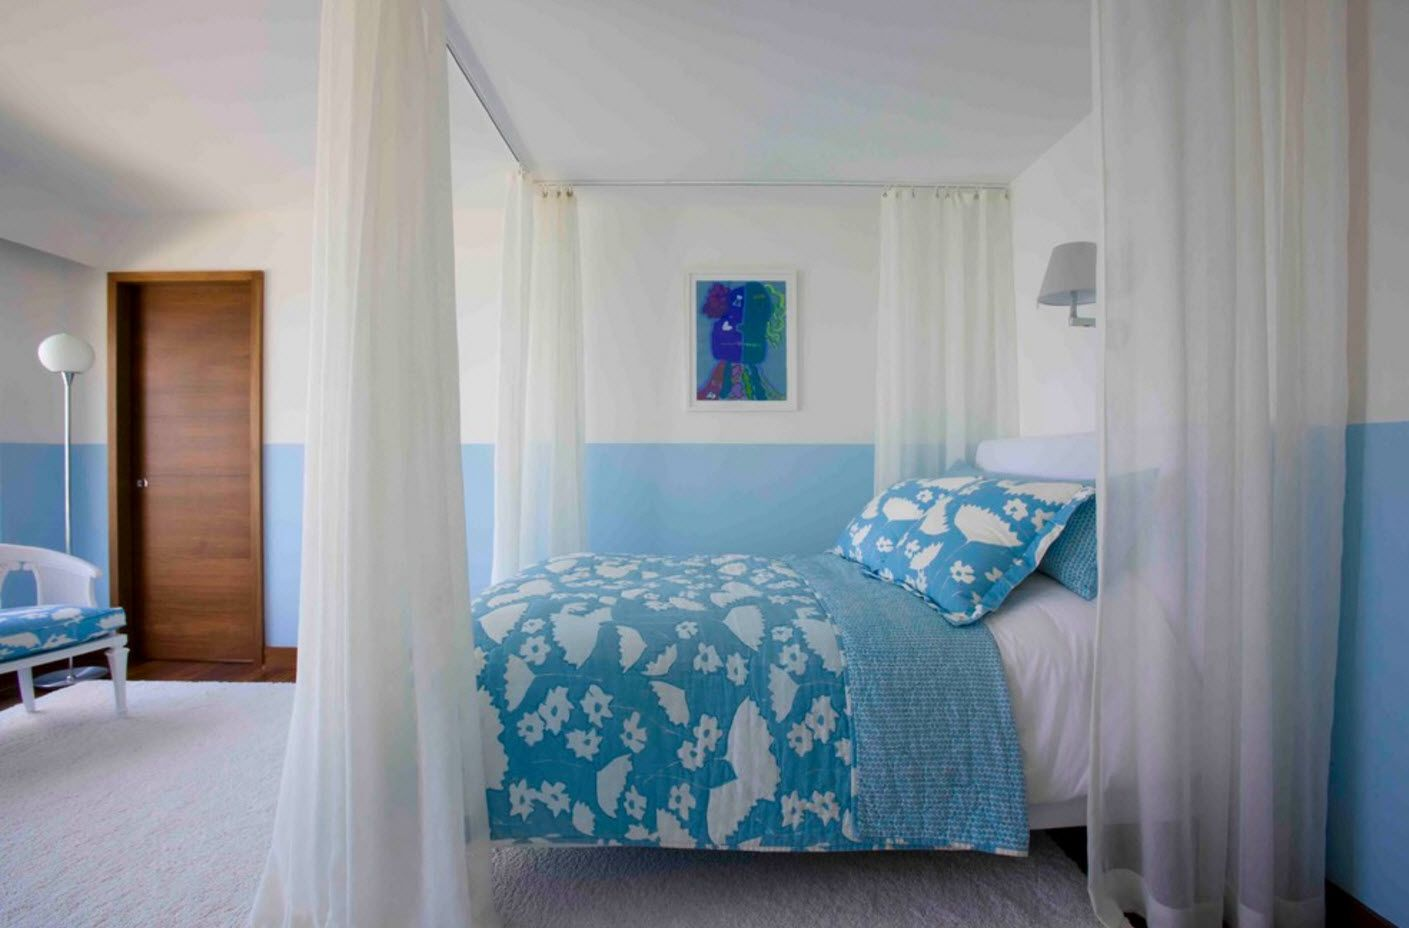 Blue and white color theme for the modern bedroom with canopy